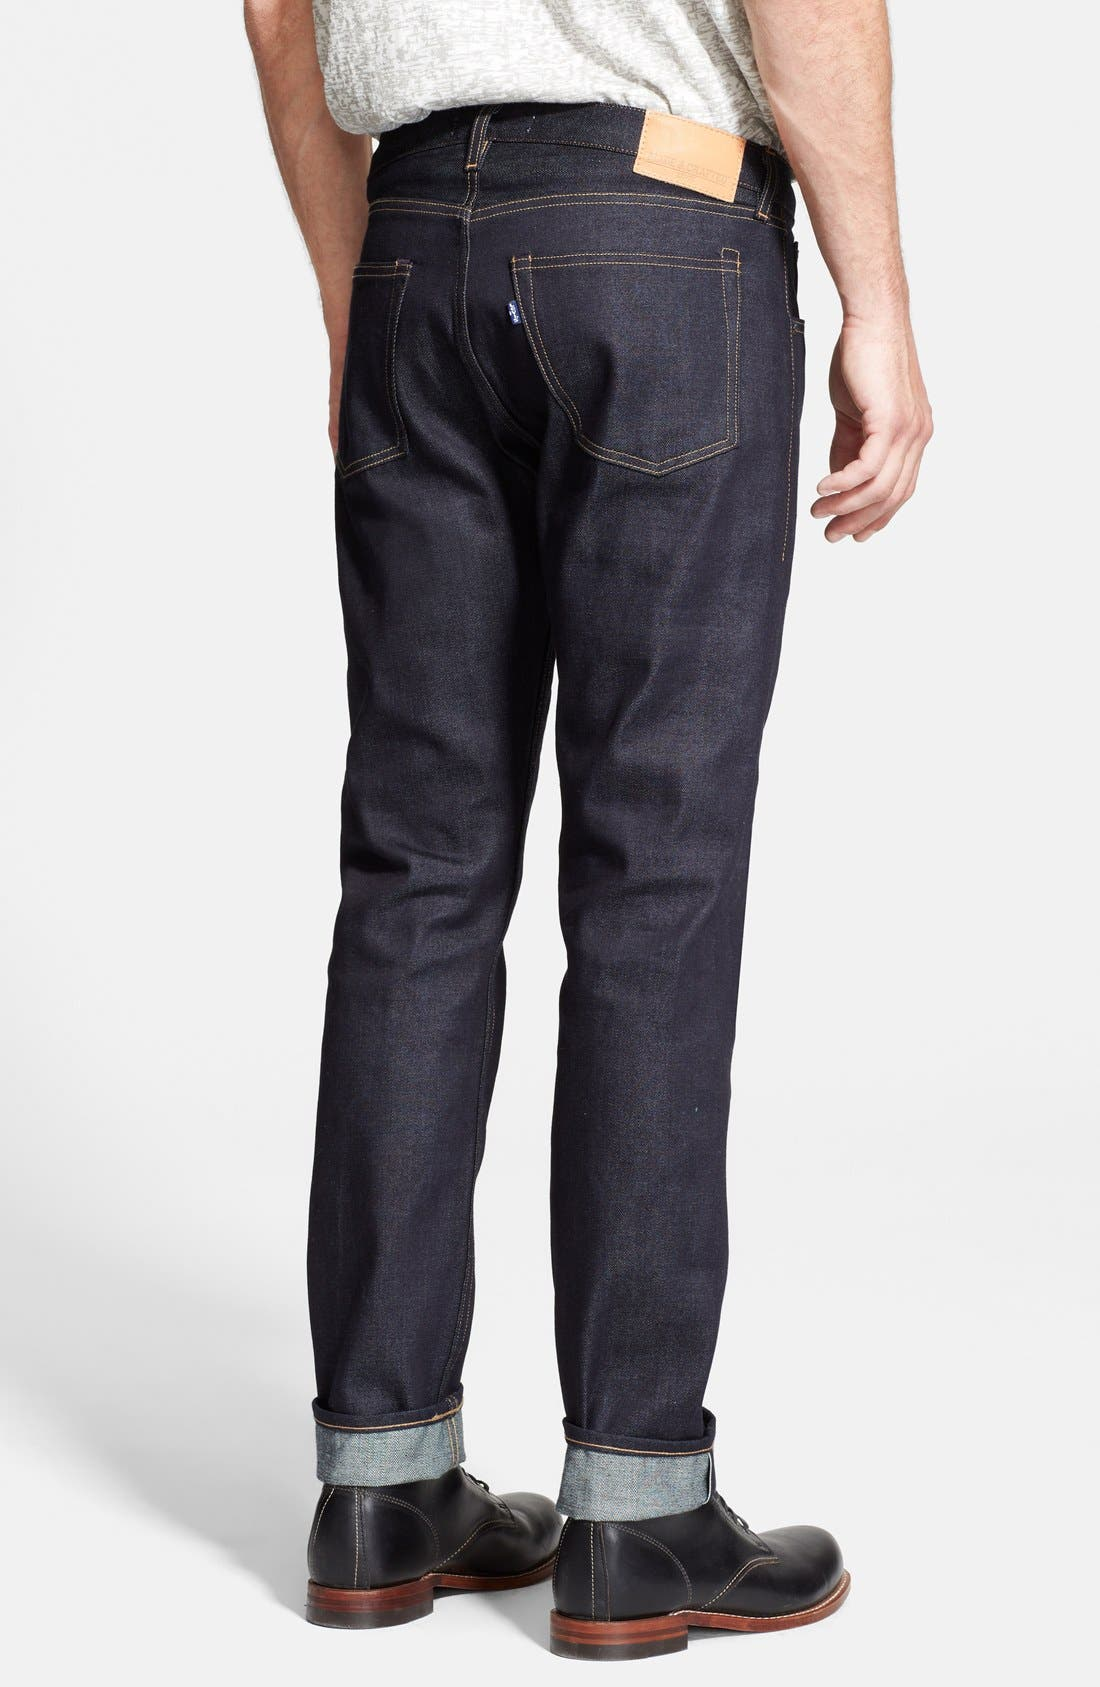 LEVI'S<SUP>®</SUP> MADE & CRAFTED<SUP>™</SUP>, 'Tack' Slim Fit Jeans, Alternate thumbnail 3, color, 400